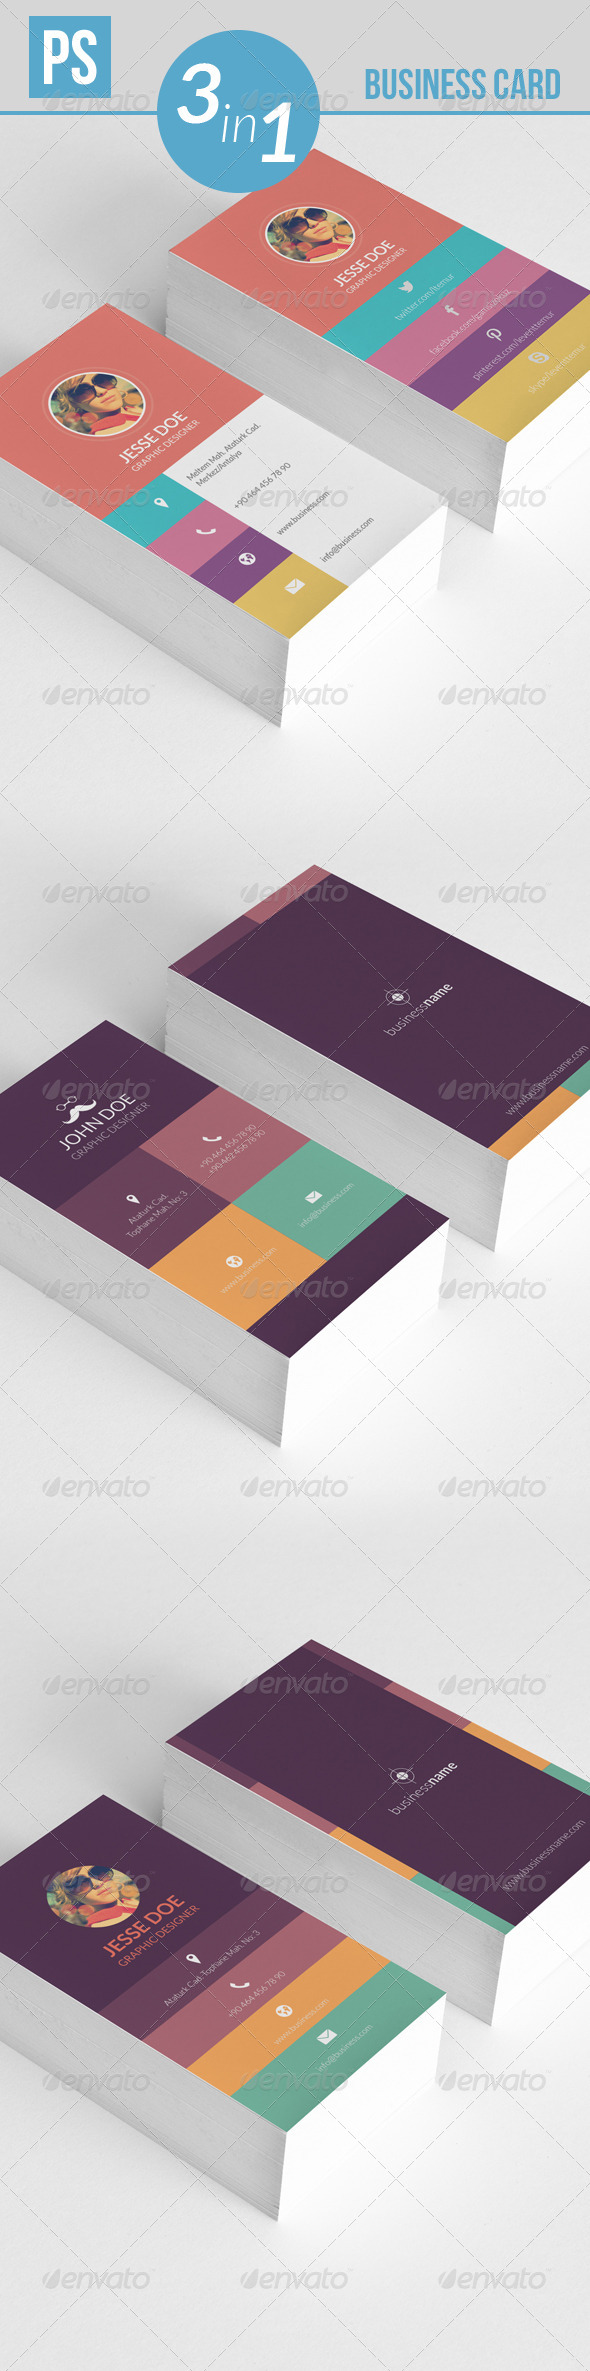 GraphicRiver Business Card 5211795